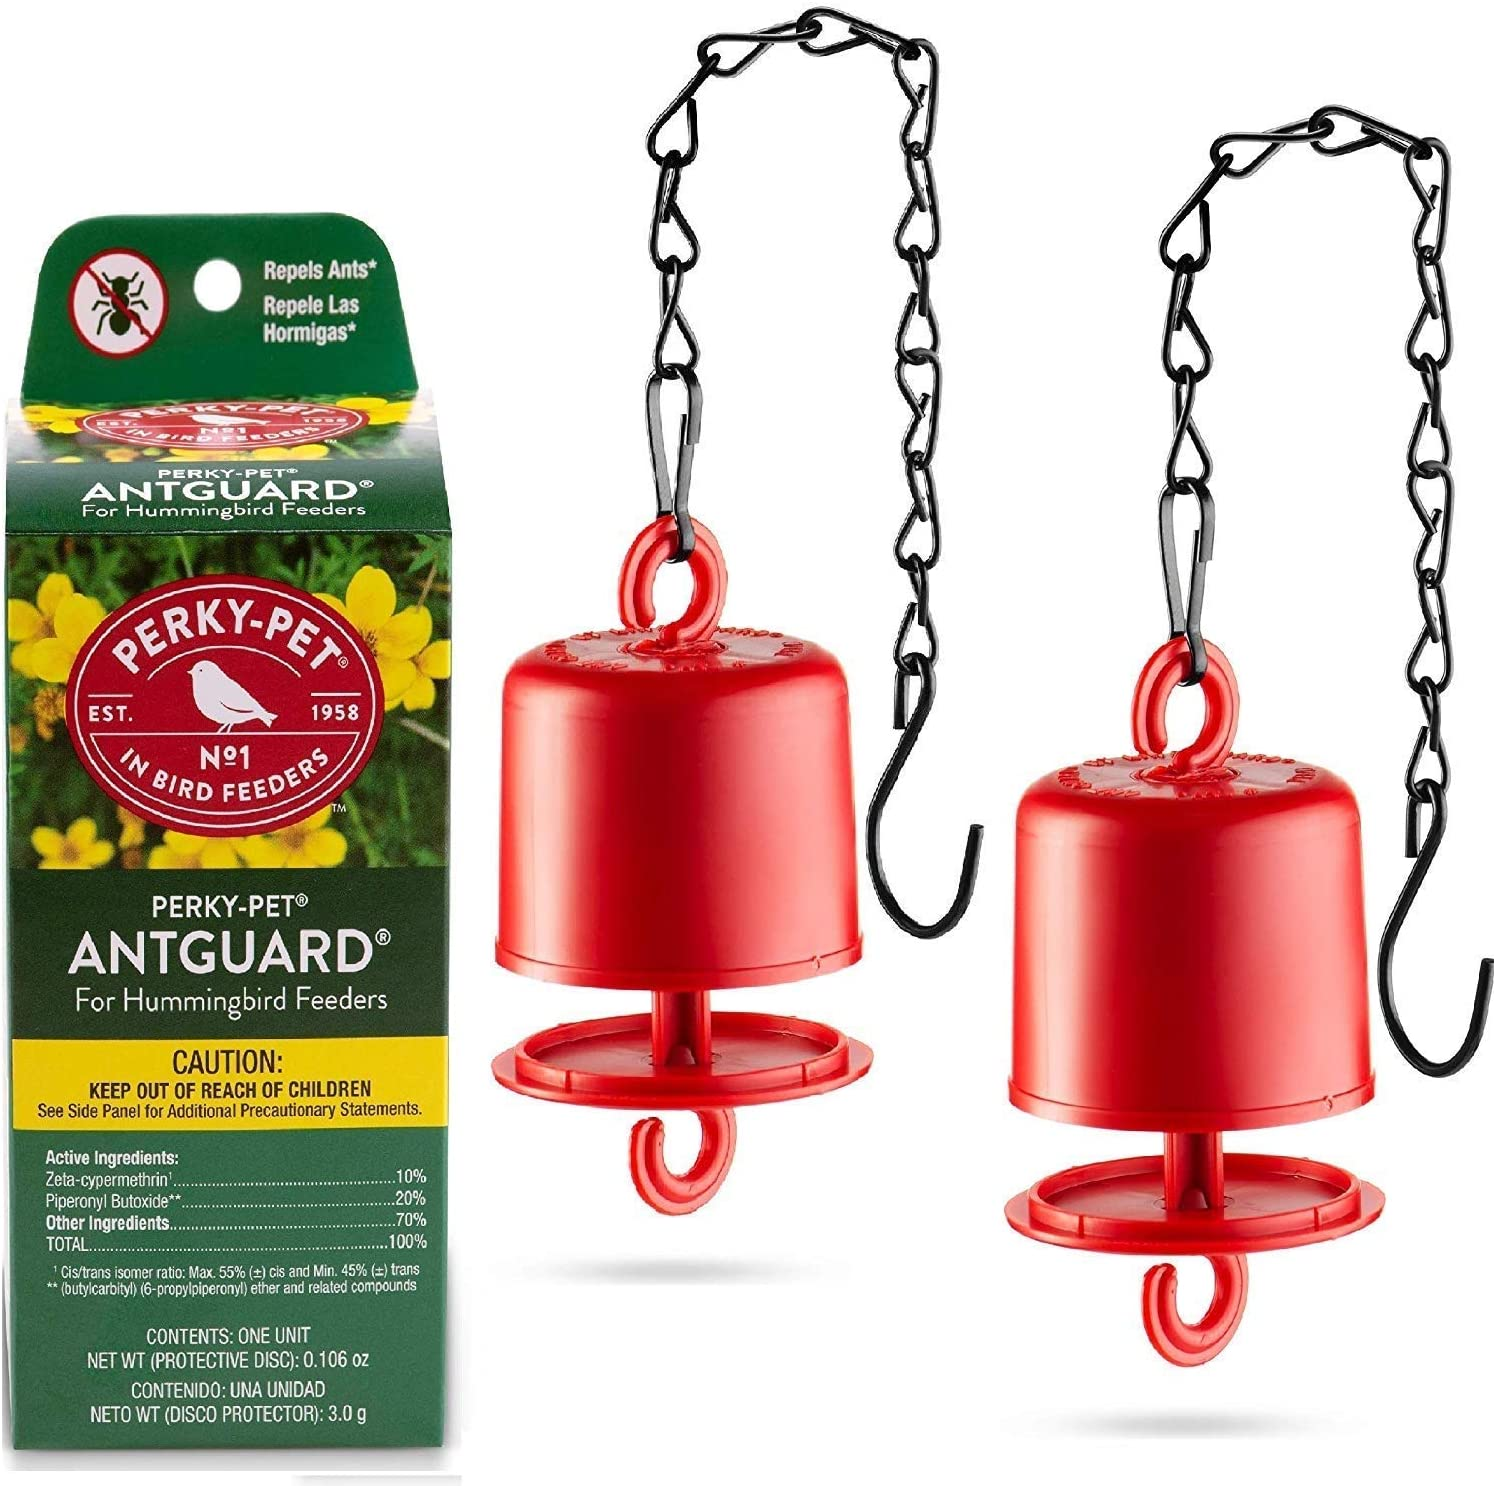 Amazon.com : Ant Guard For Hummingbird Feeders - Repels Ants ...